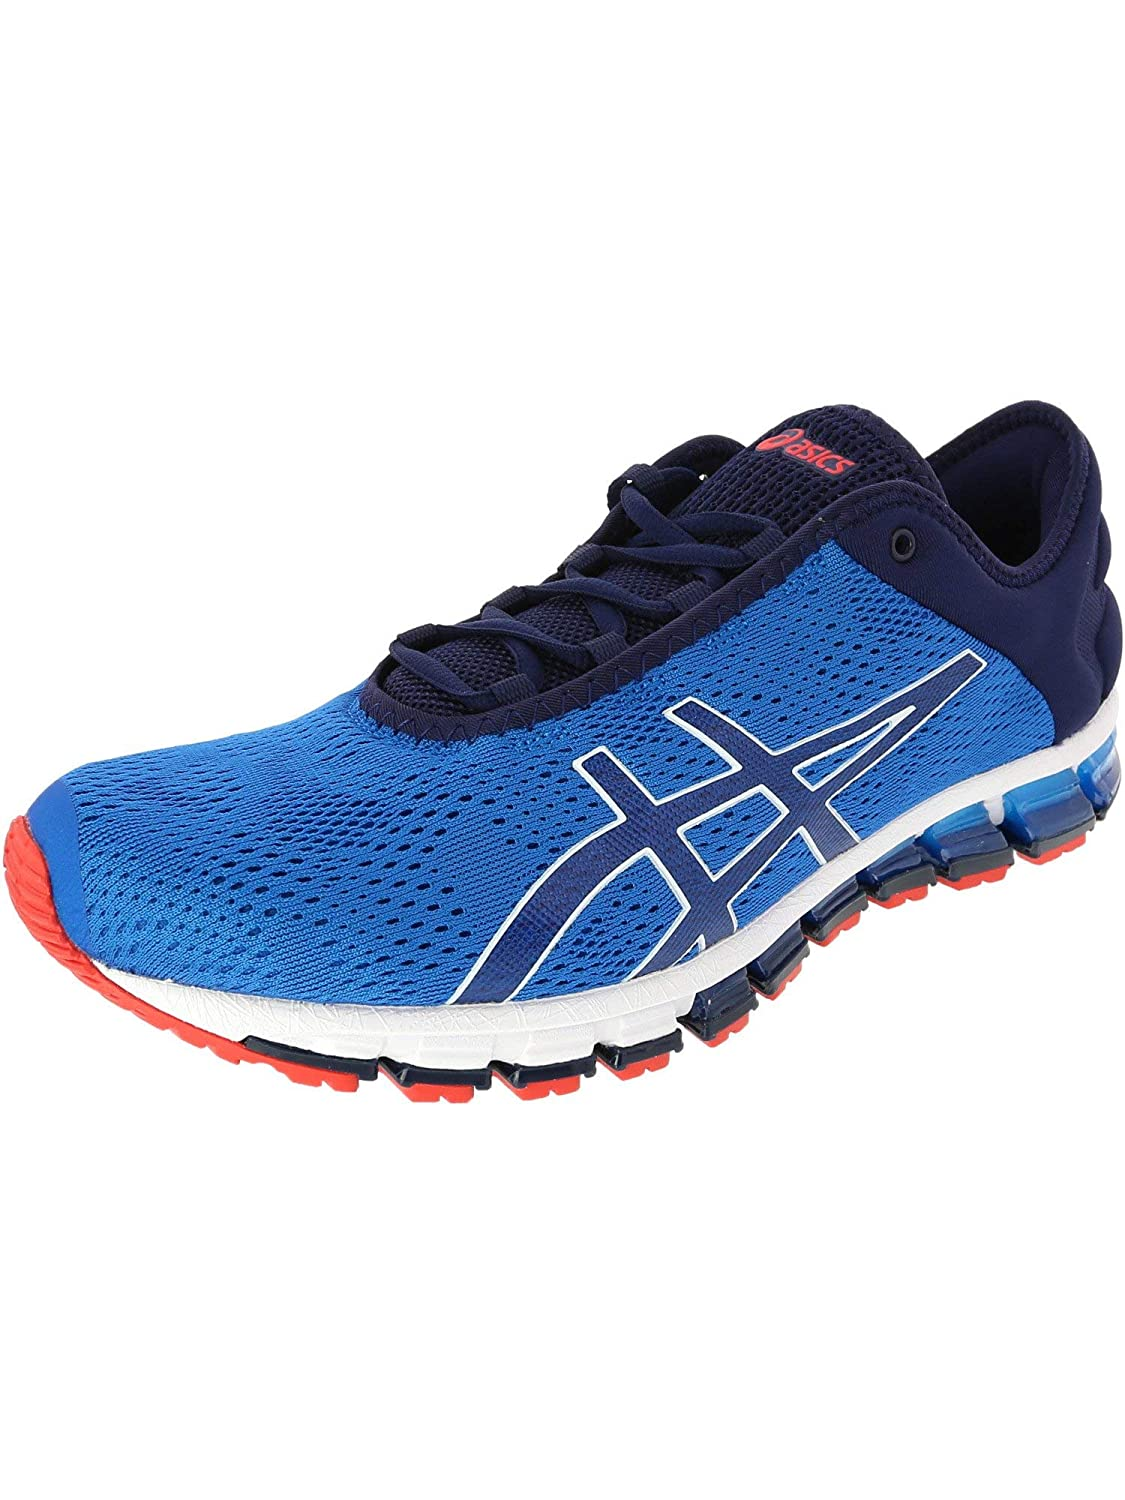 Asics Men's Gel-Quantum 180 3 Race Blue/Peacoat - 8M